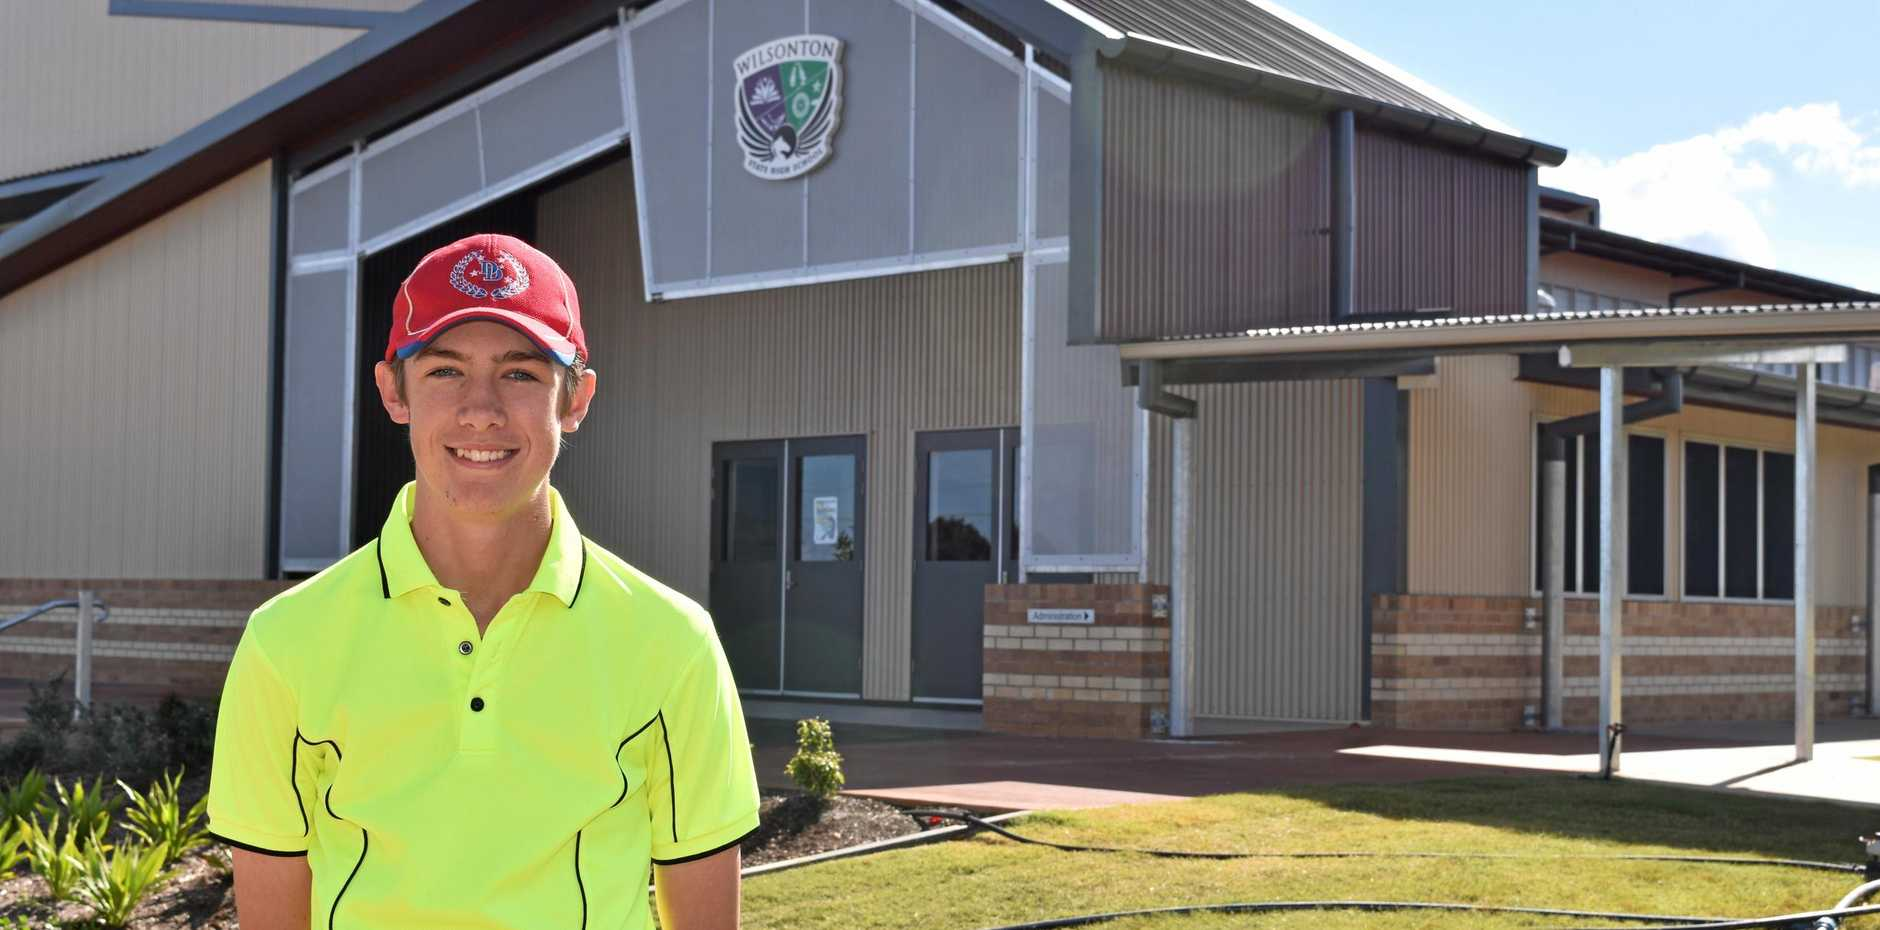 THE RIGHT CALLS: Wilsonton State High School's Flynn Jefferies will represent the Darling Downs as an umpire for today's Queensland School Sport 13-19 years Boys Hockey State Championships.